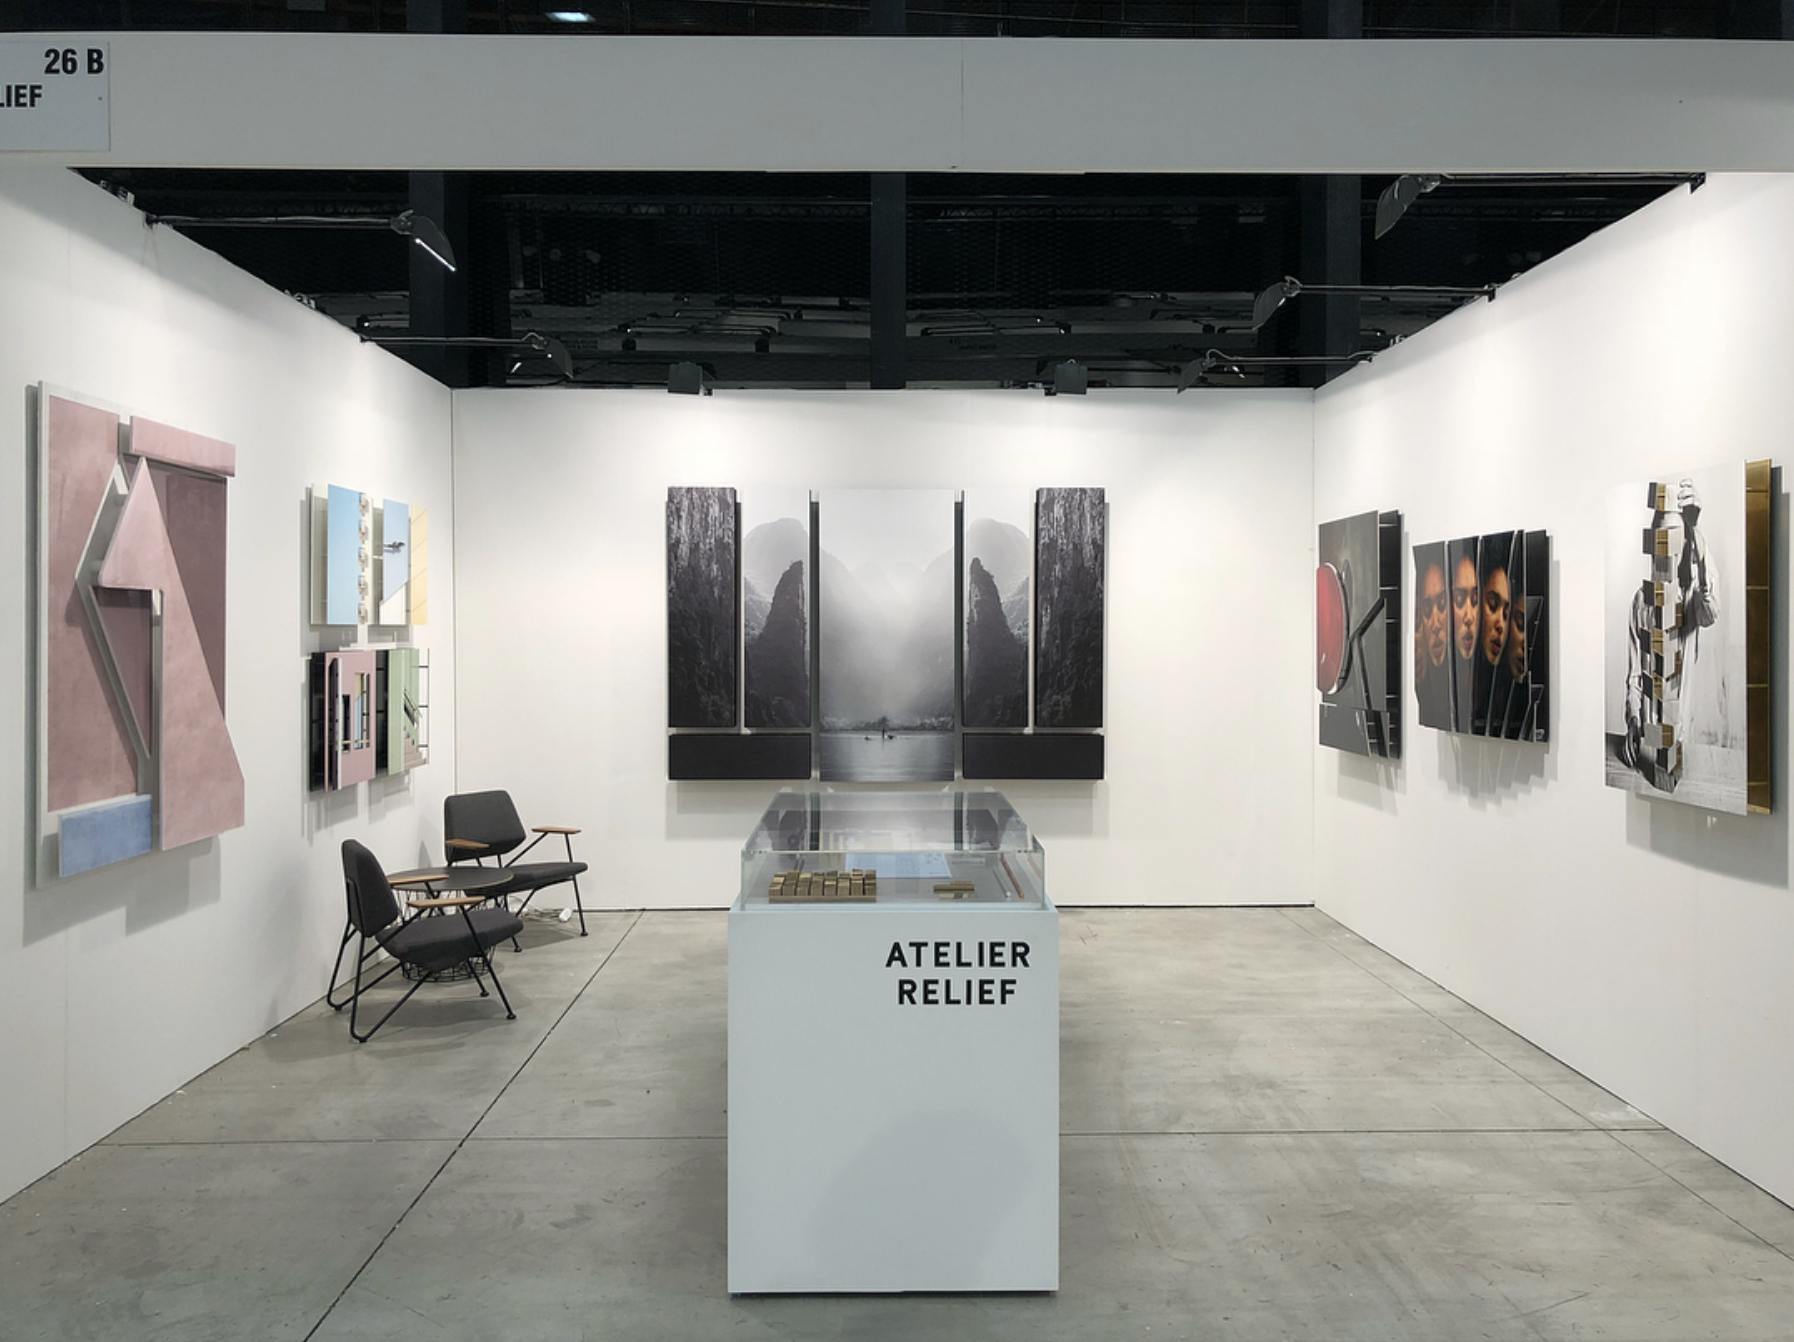 Atelier Relief - Mia Photo Fair 2018